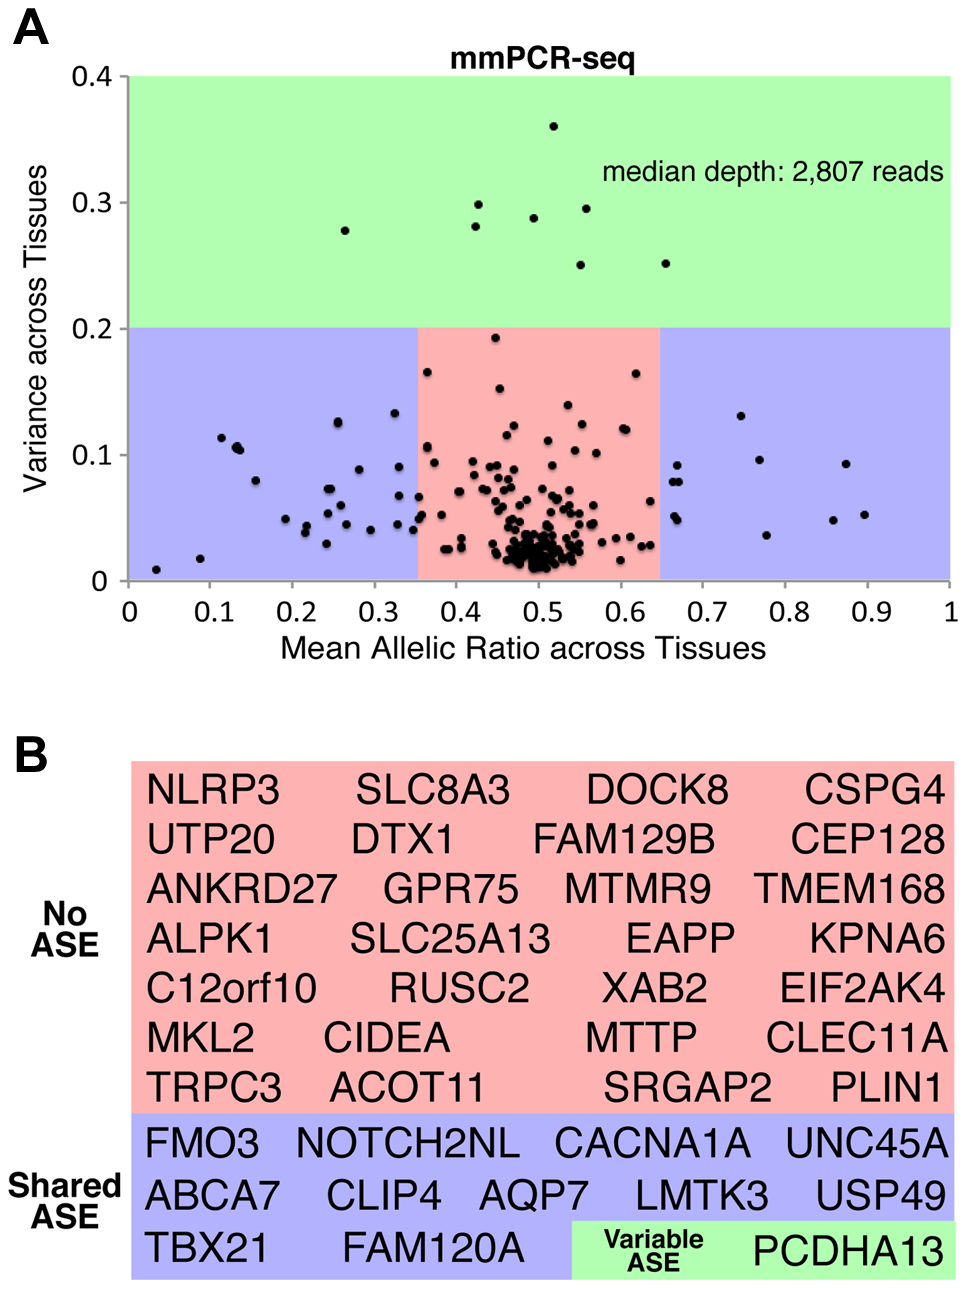 Patterns of ASE across tissues and their influence on rare deleterious variant interpretation.